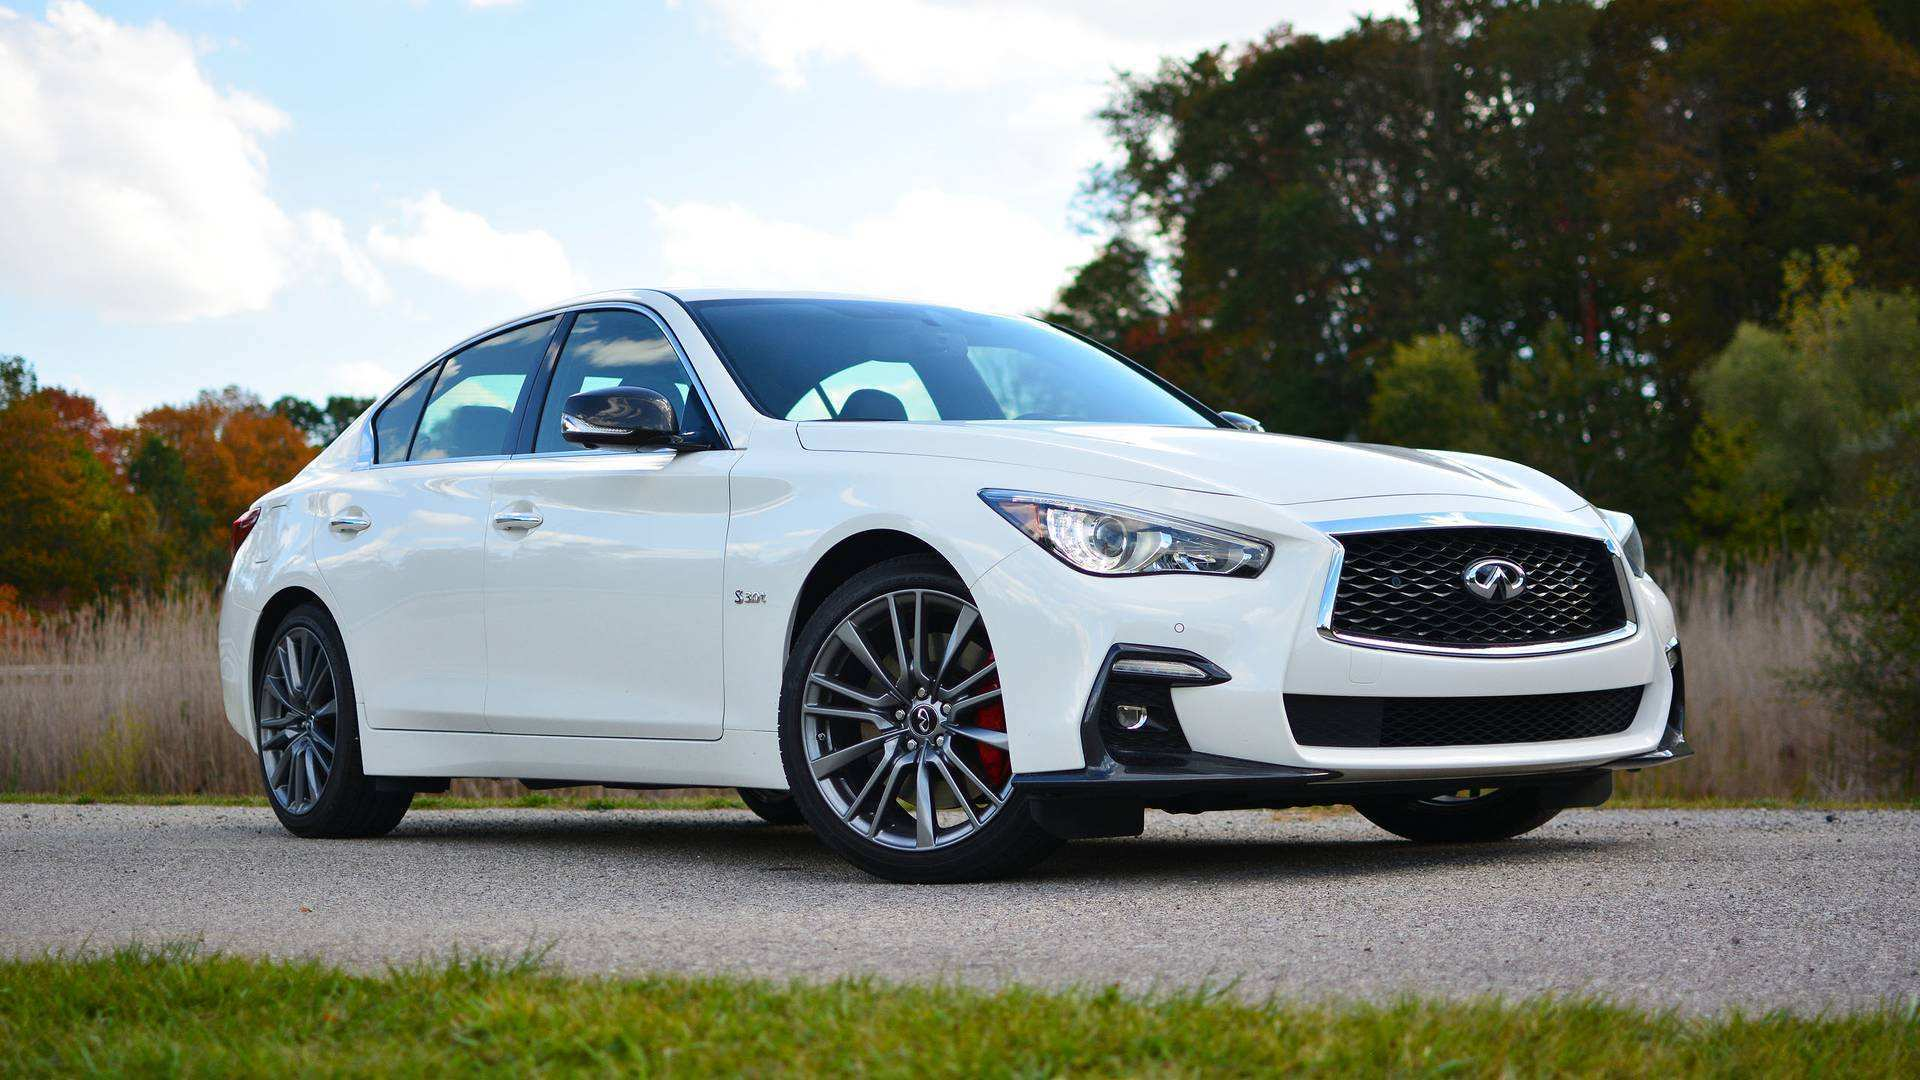 47 Great The Infiniti Q50 2019 Images Rumors History by The Infiniti Q50 2019 Images Rumors